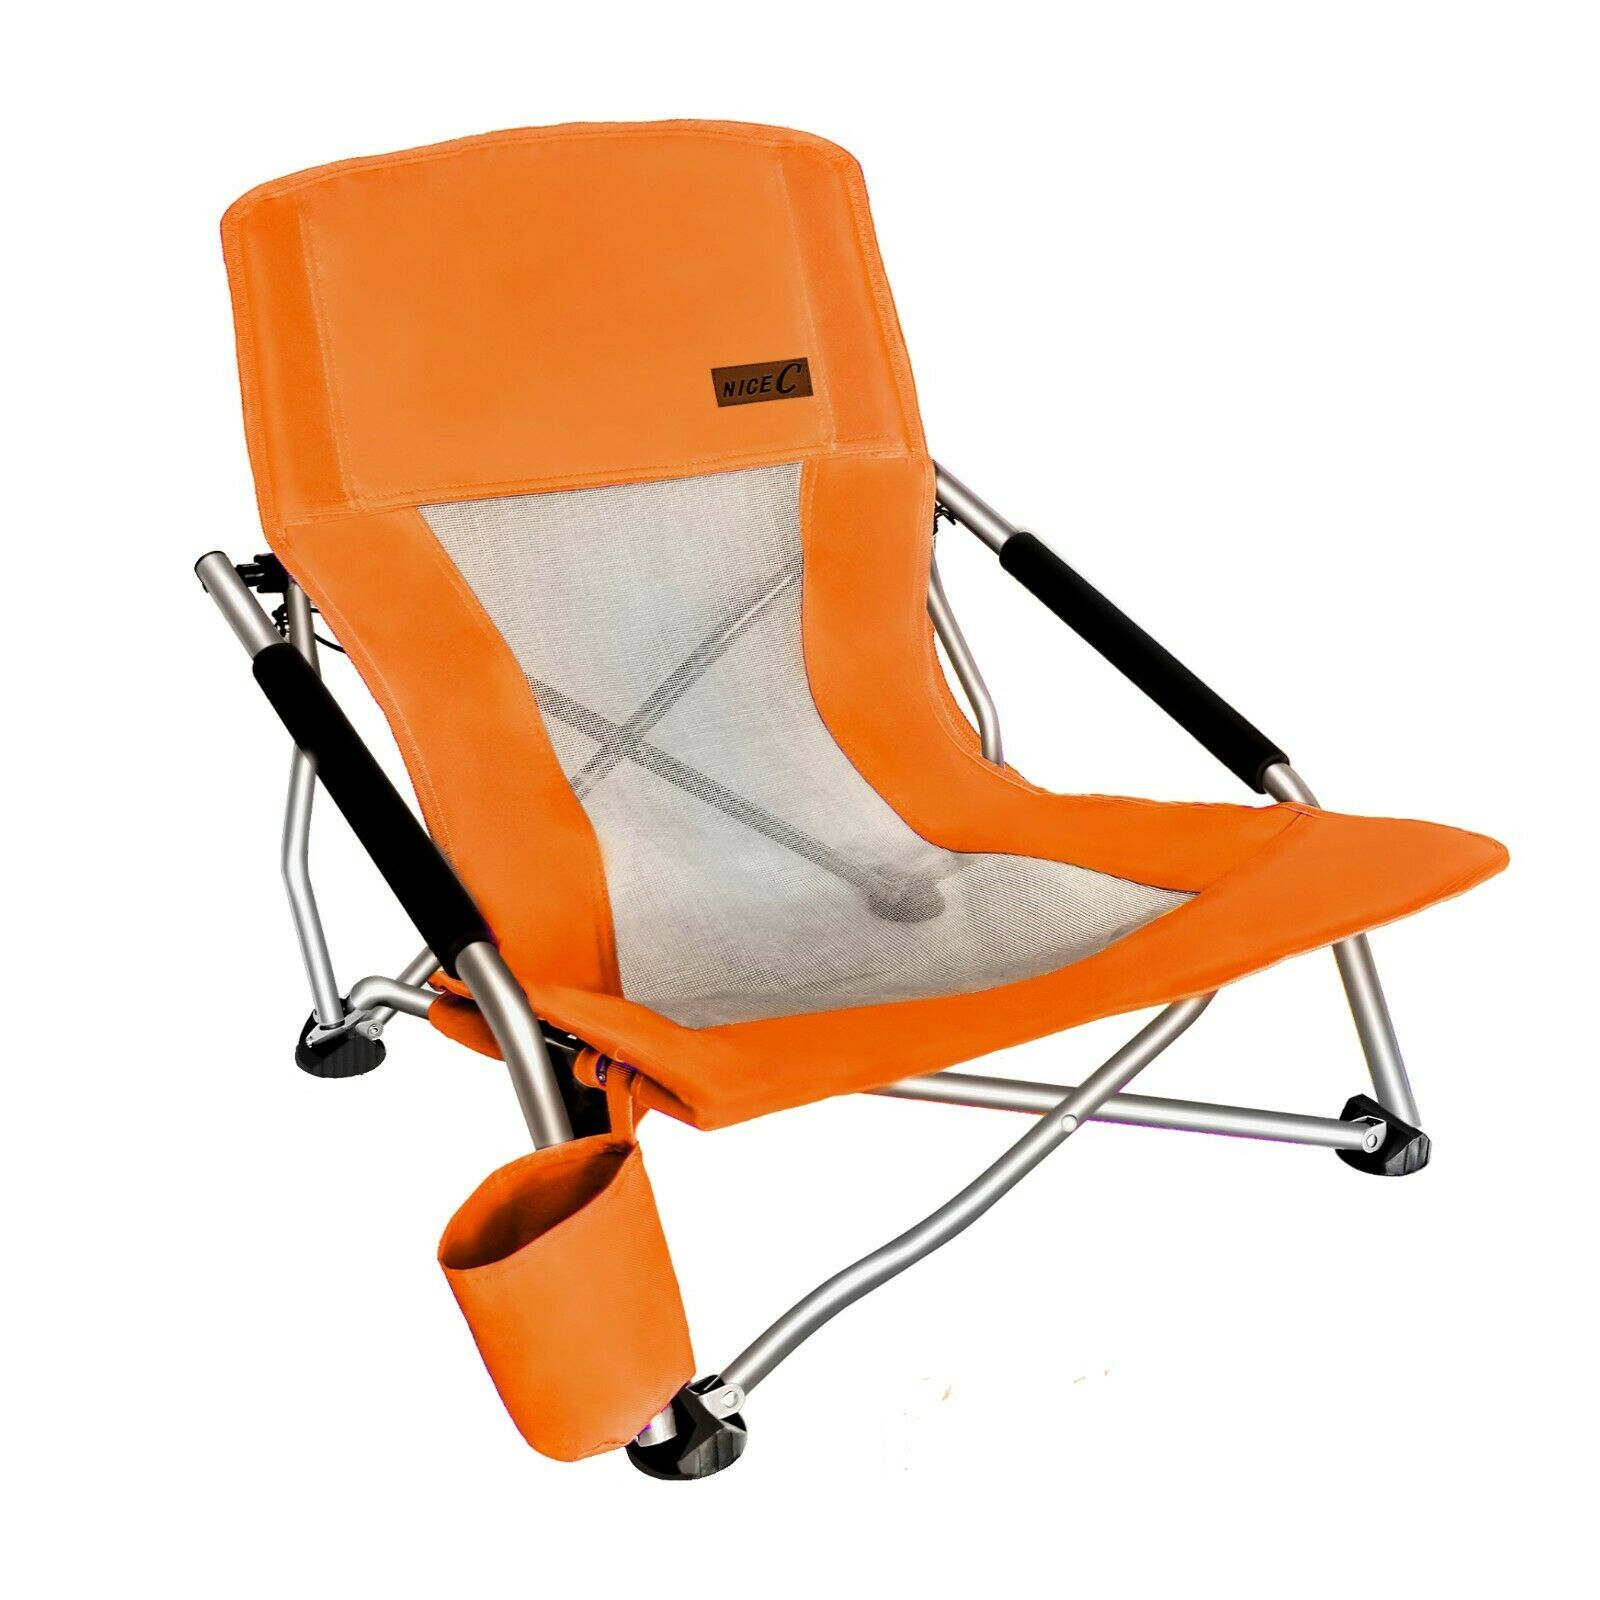 Folding Beach Chair With Cup Holder Portable Camping Ultralight Compact - Orange